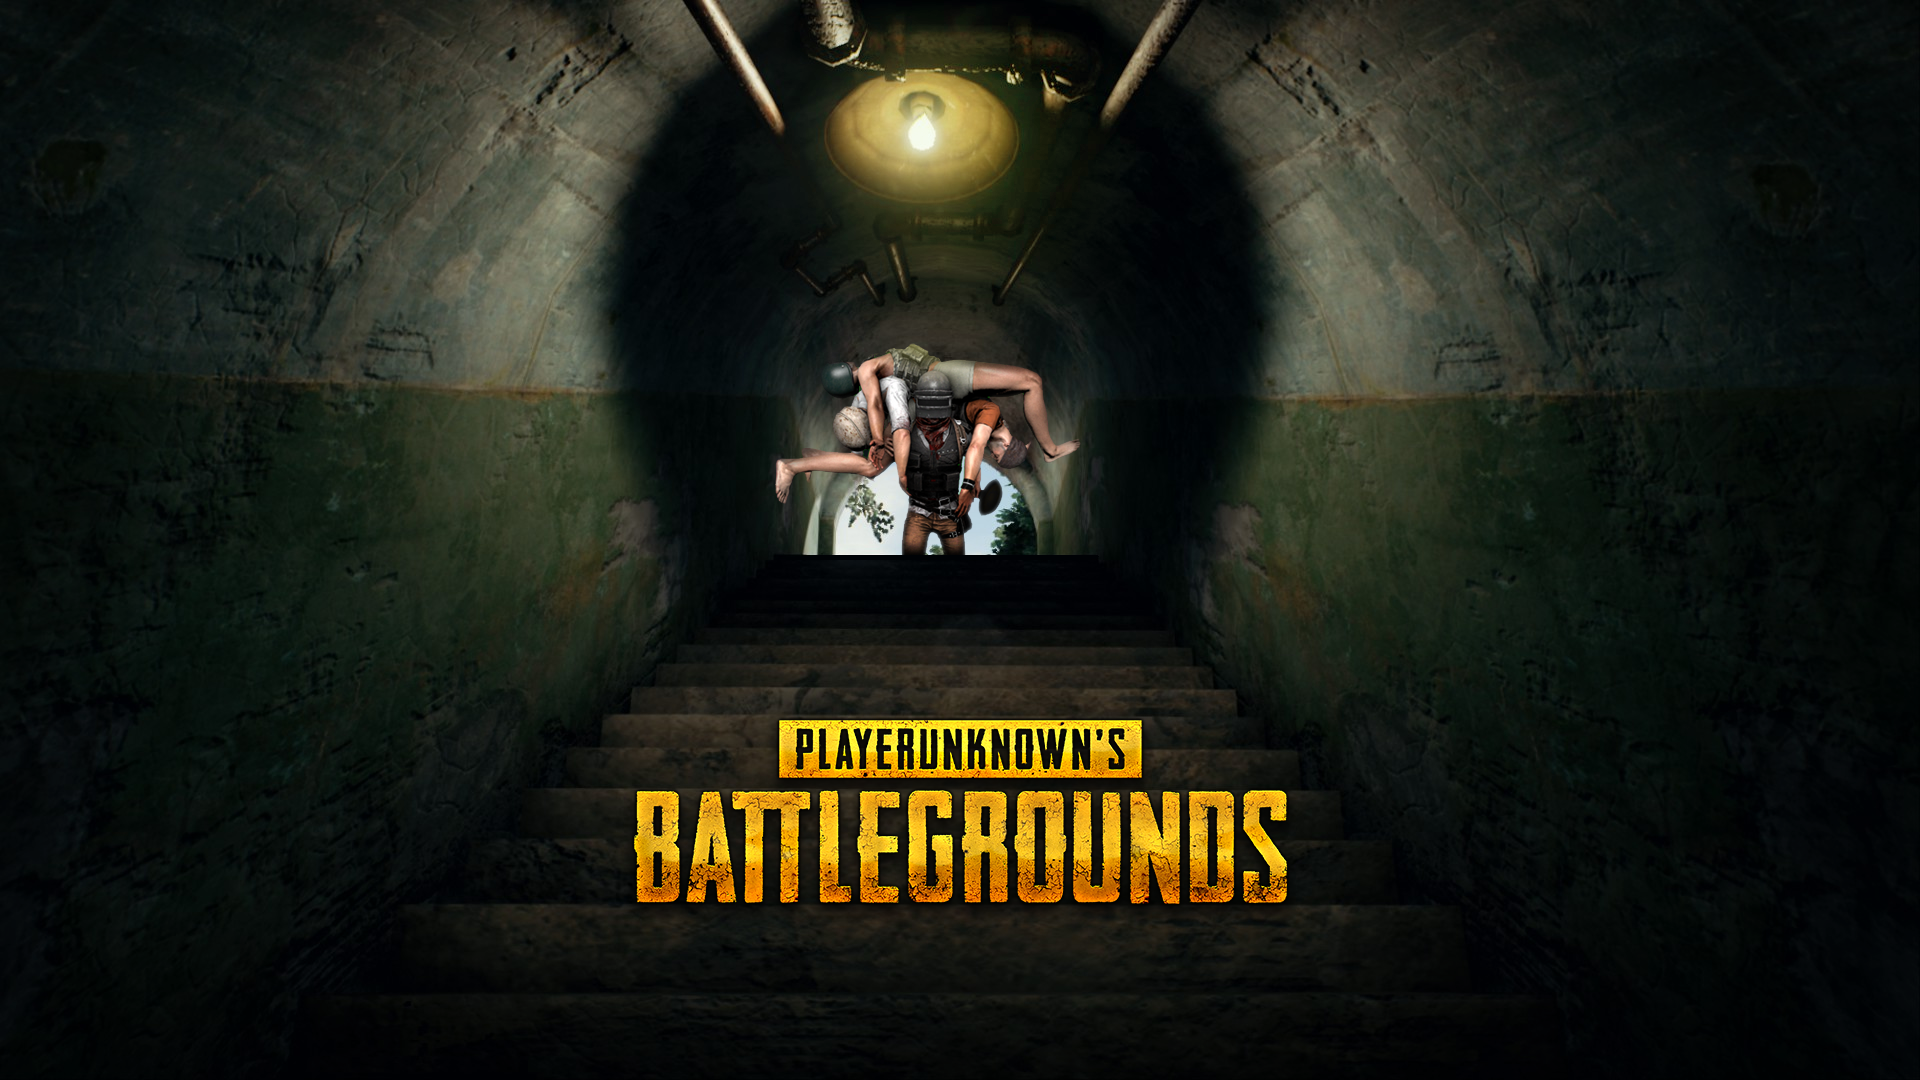 Pubg Wallpaper Hd For Iphone 6: Squads Si Aggiunge Ad Una Nuova Mappa